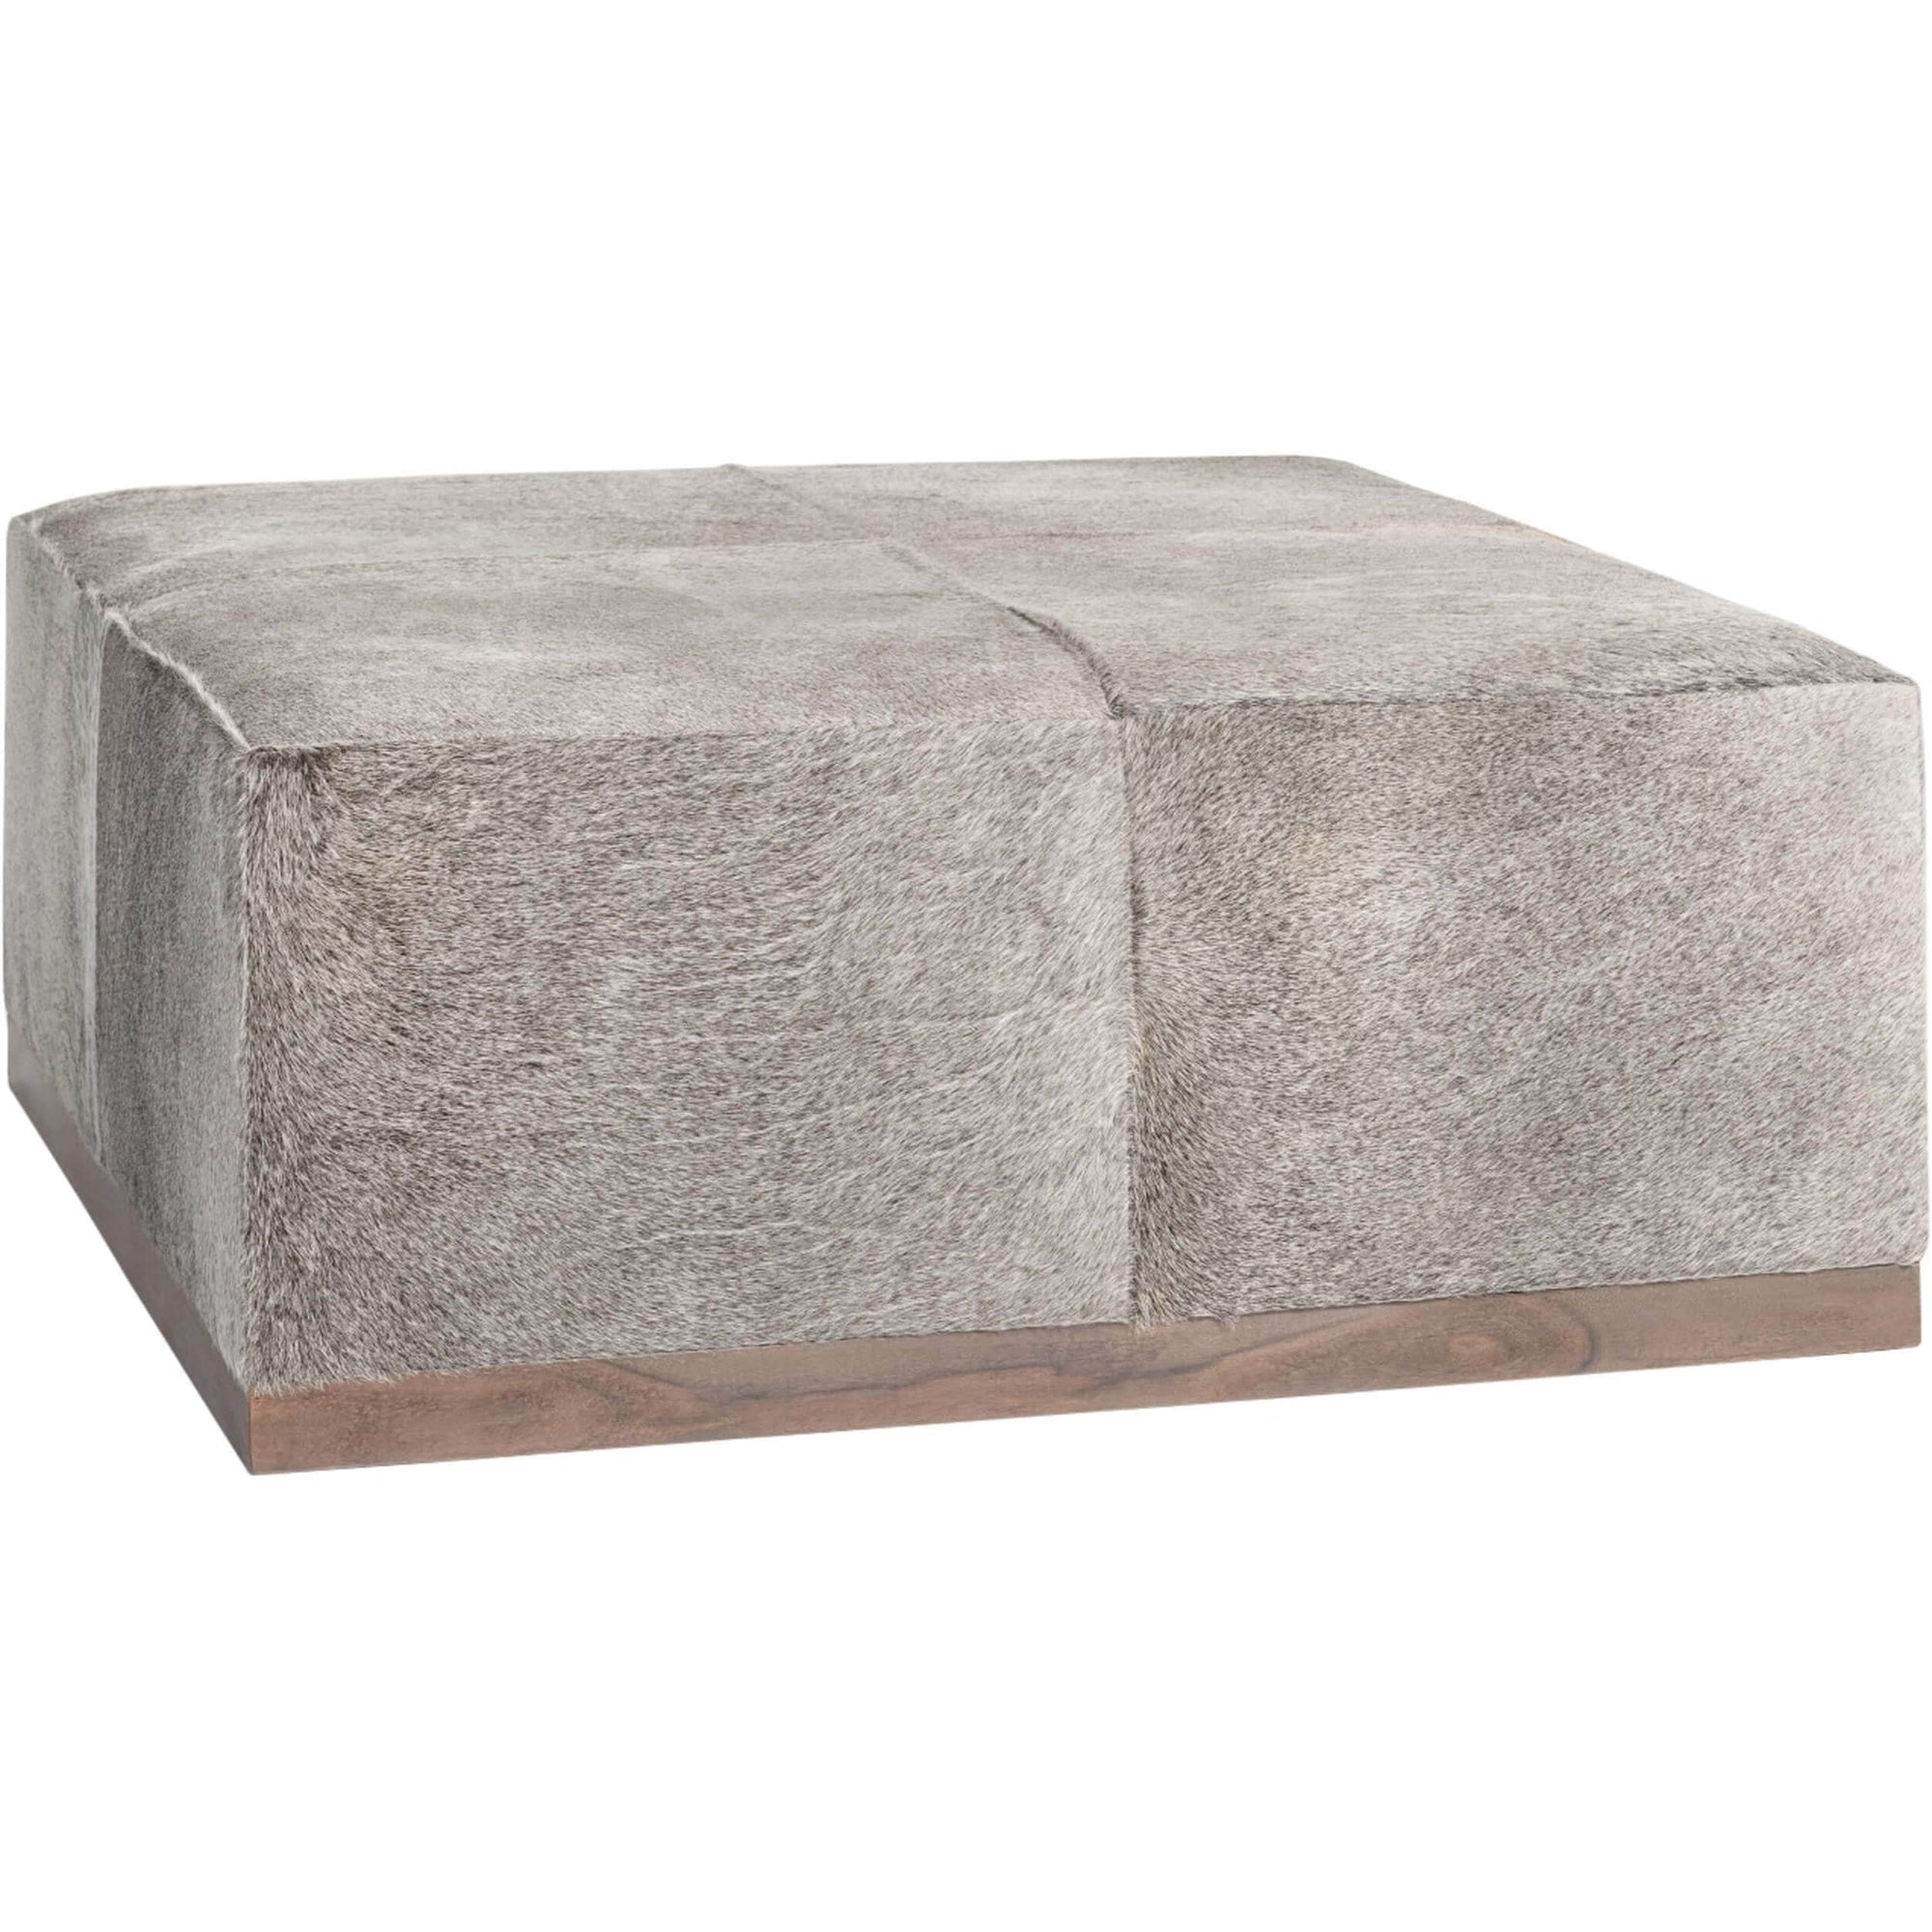 Felix Large Leather Ottoman Frosted Hide High Fashion Home